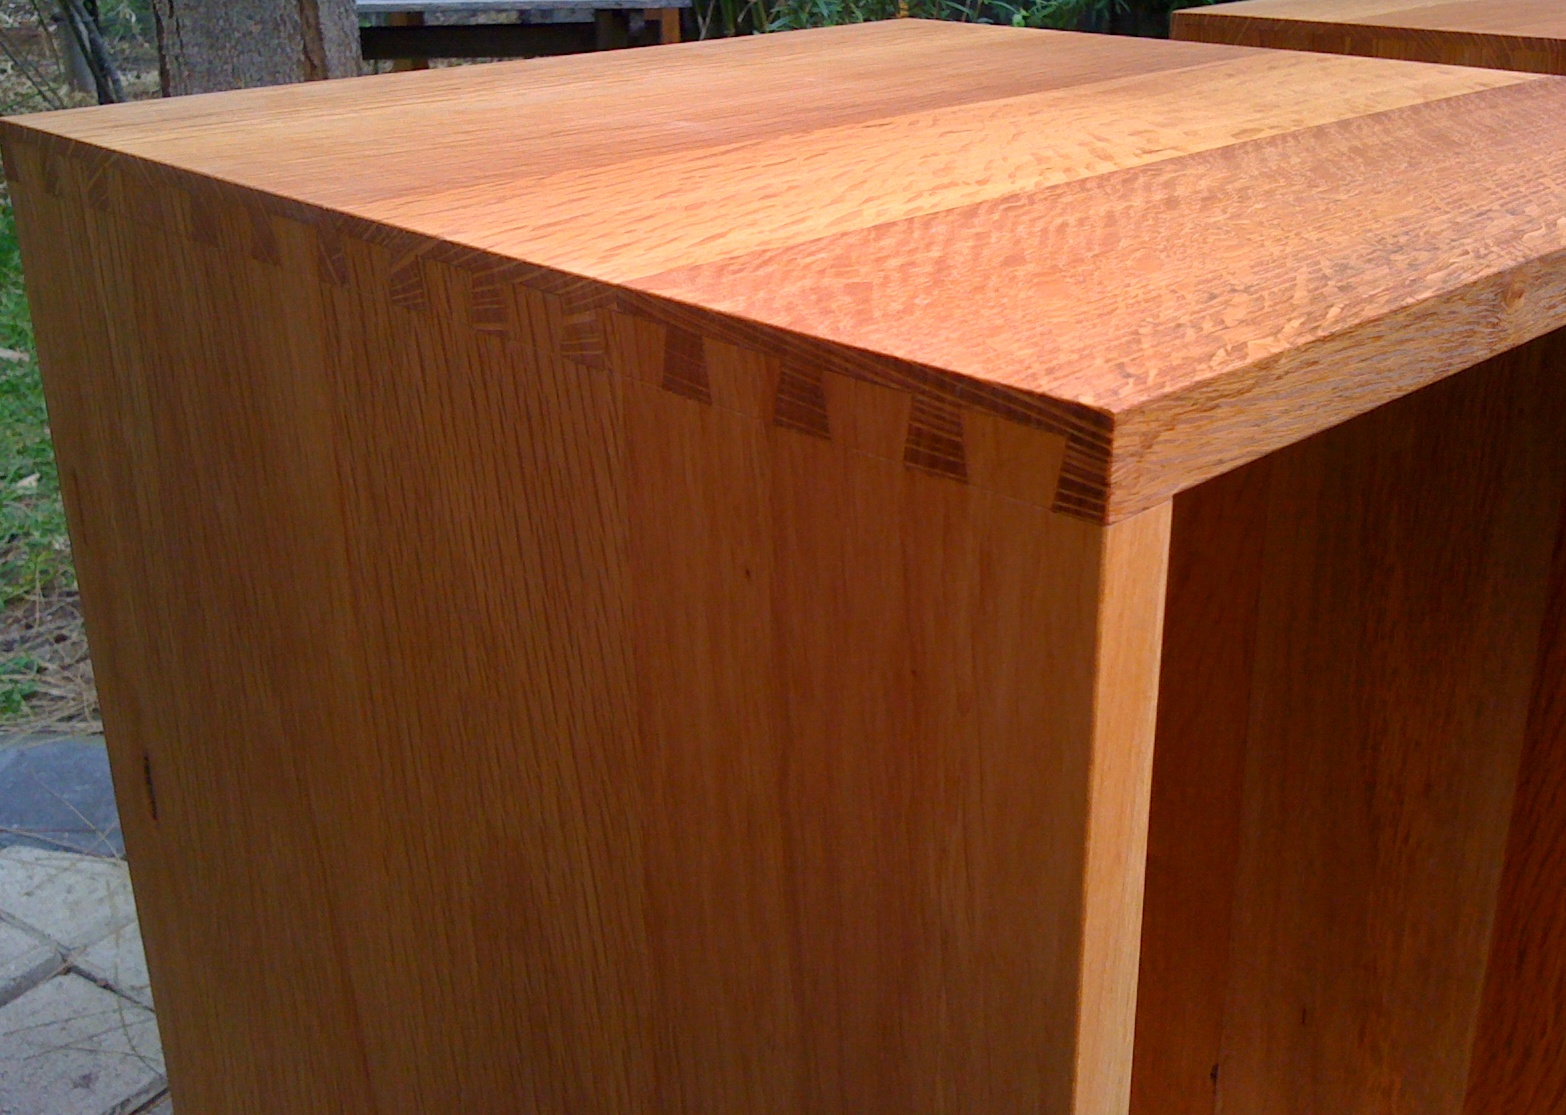 The Joy Of Wood Aahh The Wonderful Dovetail Joint